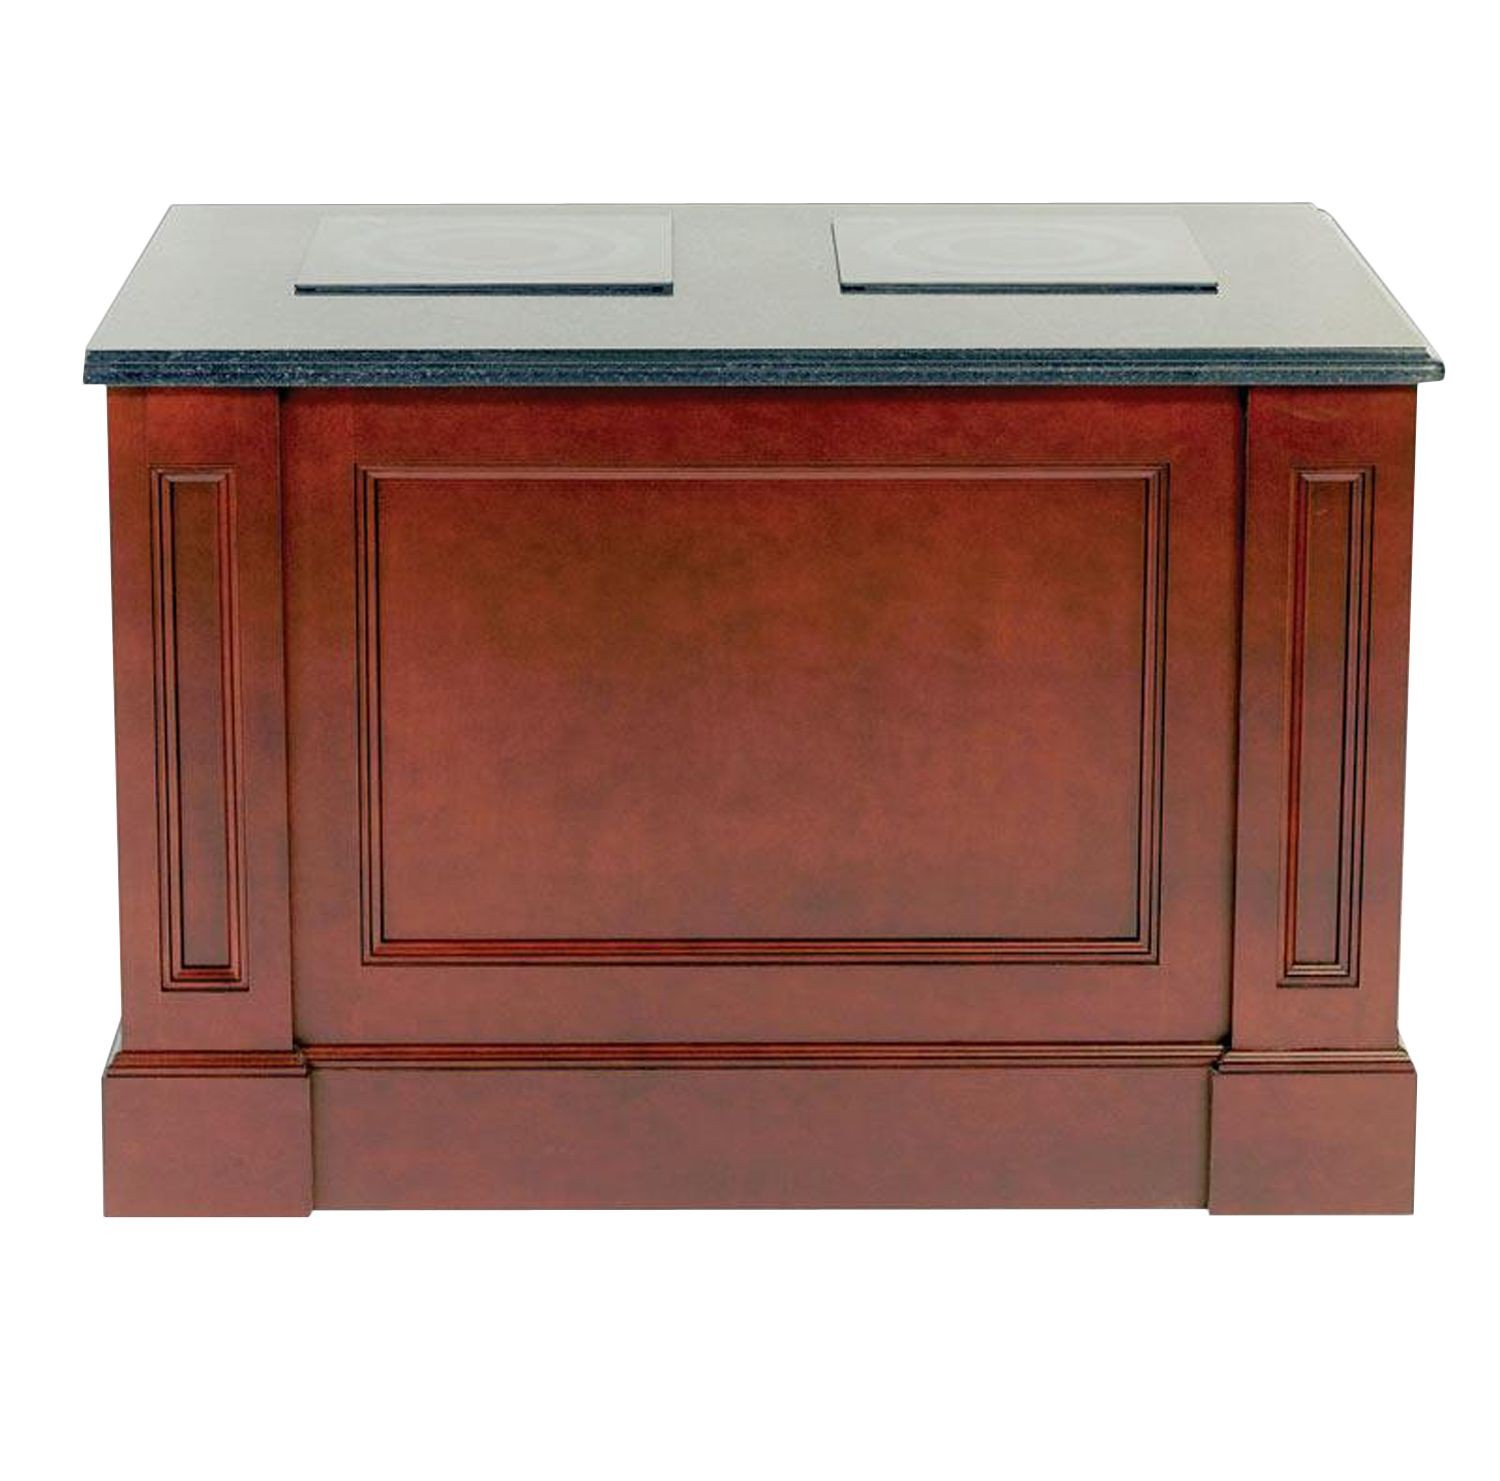 Bon Chef 50152 Double Station Recessed Panel Buffet with Standard Corian Top